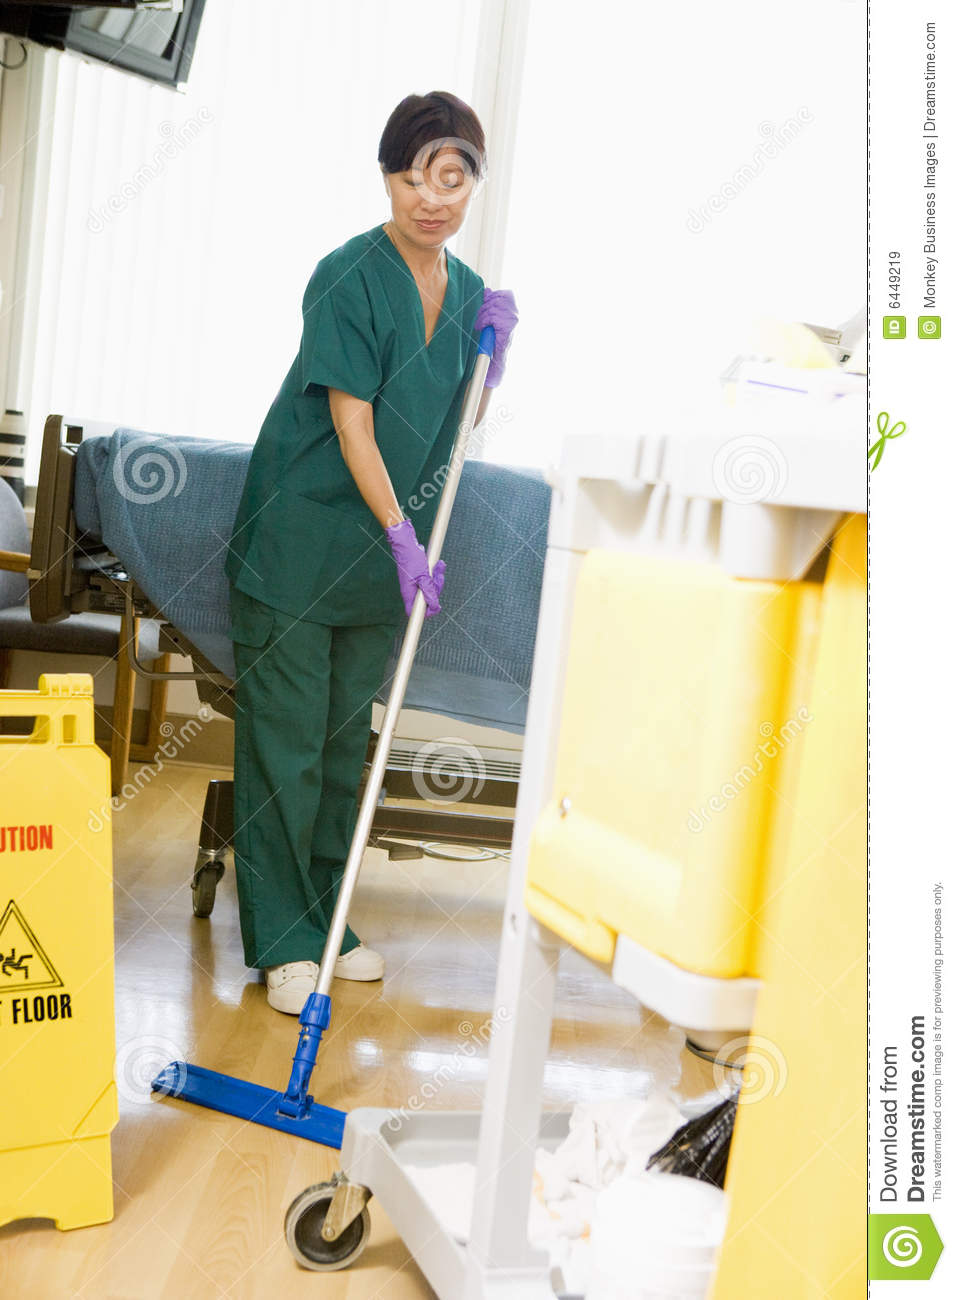 An Orderly Mopping The Floor In A Hospital Royalty Free